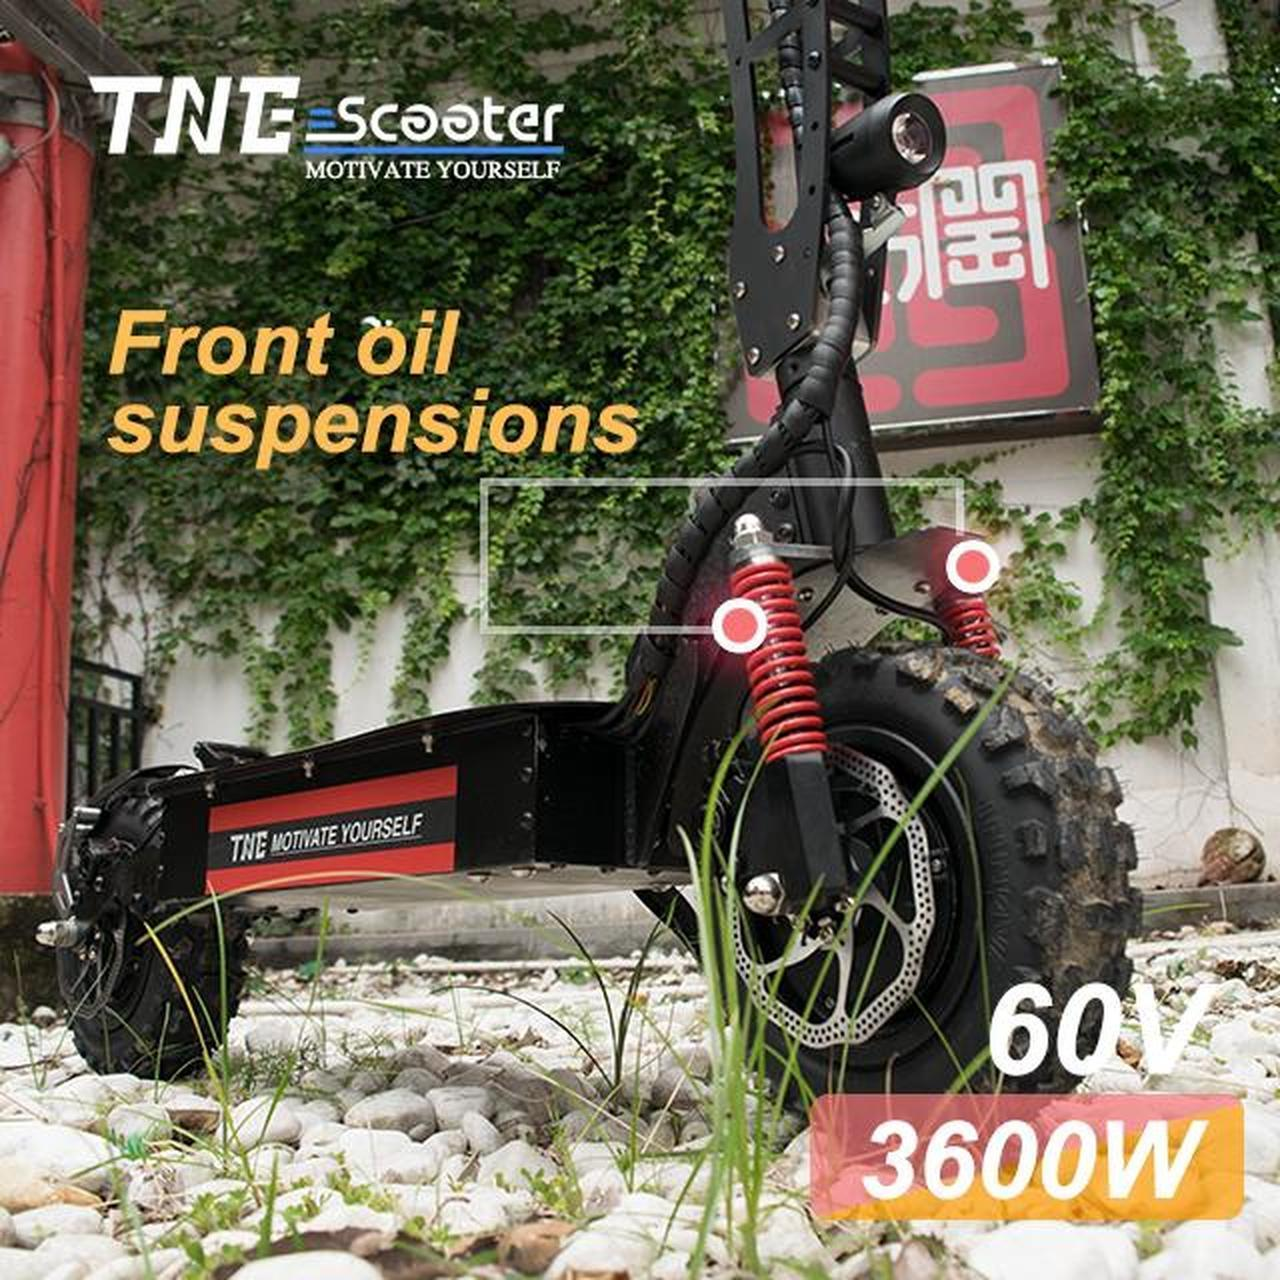 Electric Scooter TNE Prometheus 3600w 60v 25ah Lithium Battery Hydraulic Shocks